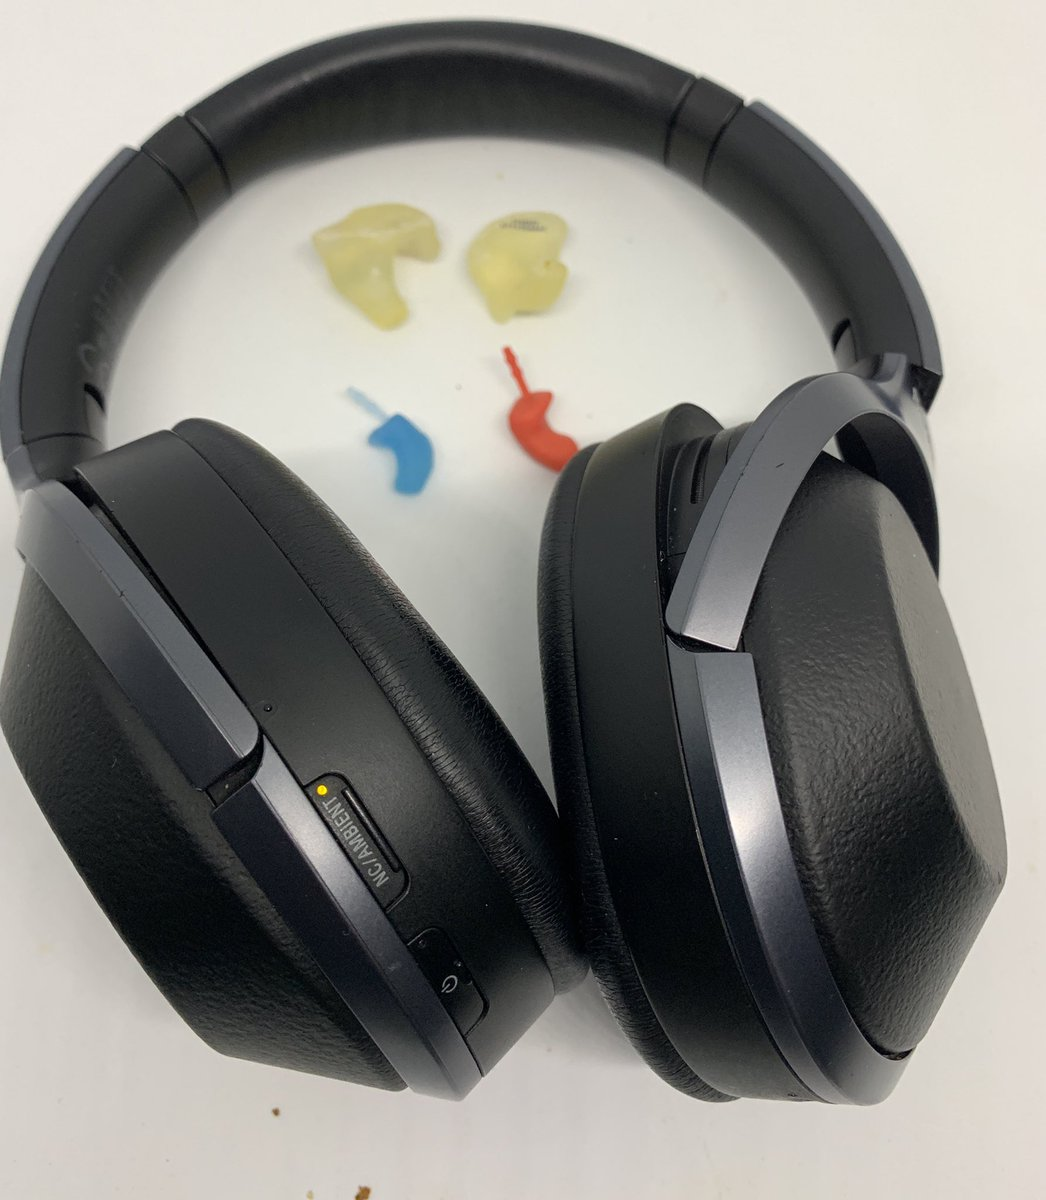 Stay safe and calm my fellow #veterans and #PTSD sufferers during the #fireworks season. Noise cancelling headphones and earplugs help keep my demons at bay.   #mentalhealth #PTSDtriggers #PTSDfireworks #anxiety #flashbackspic.twitter.com/WgA2MhMyK3